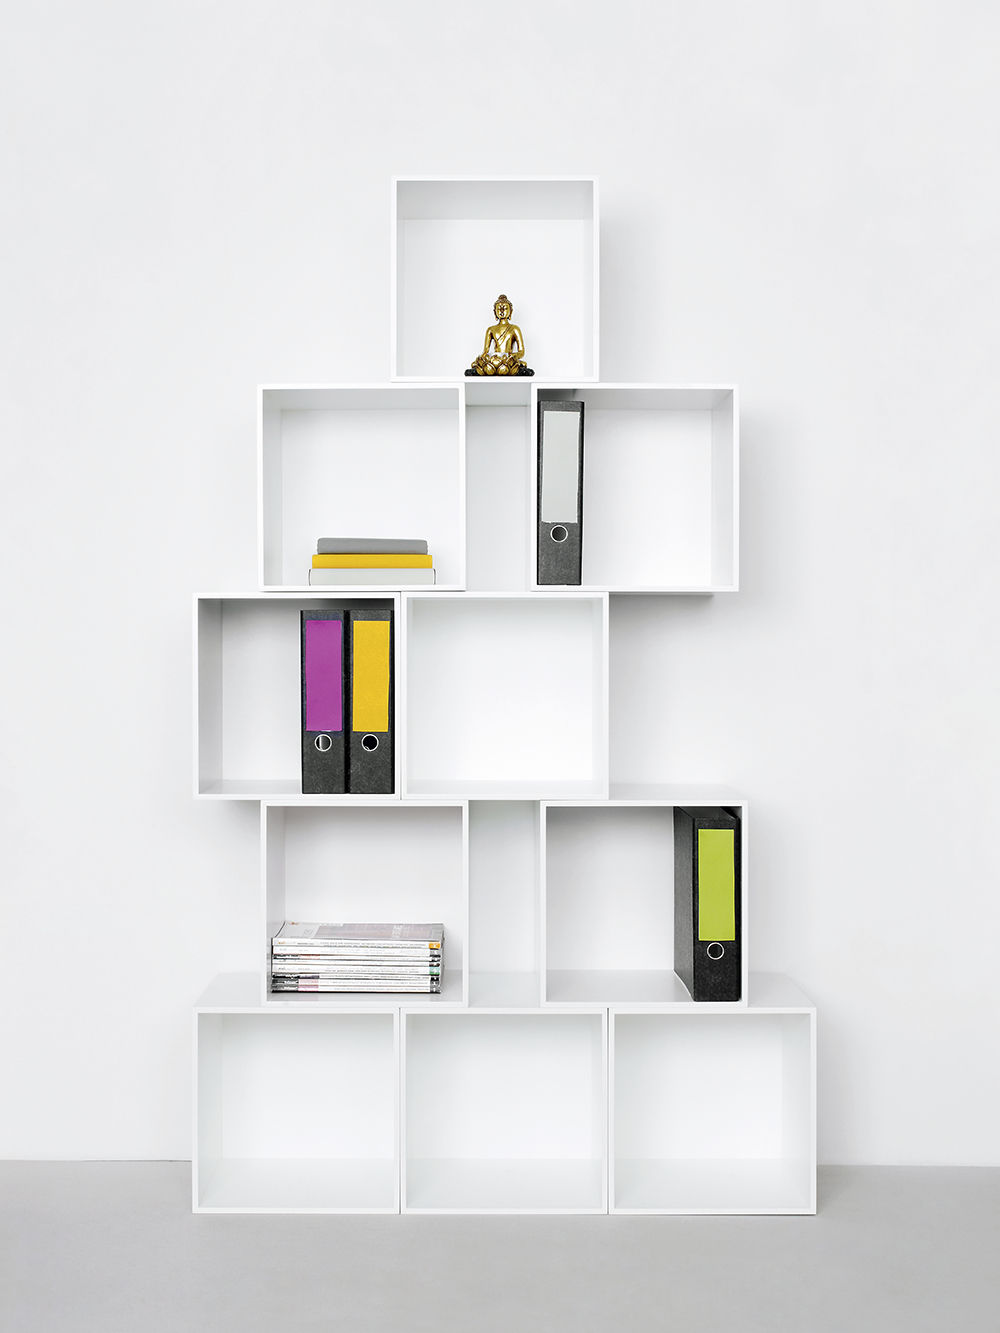 Delicieux Tall Filing Cabinet / Wall Mounted / MDF / Contemporary   Office Shelf For  Folders